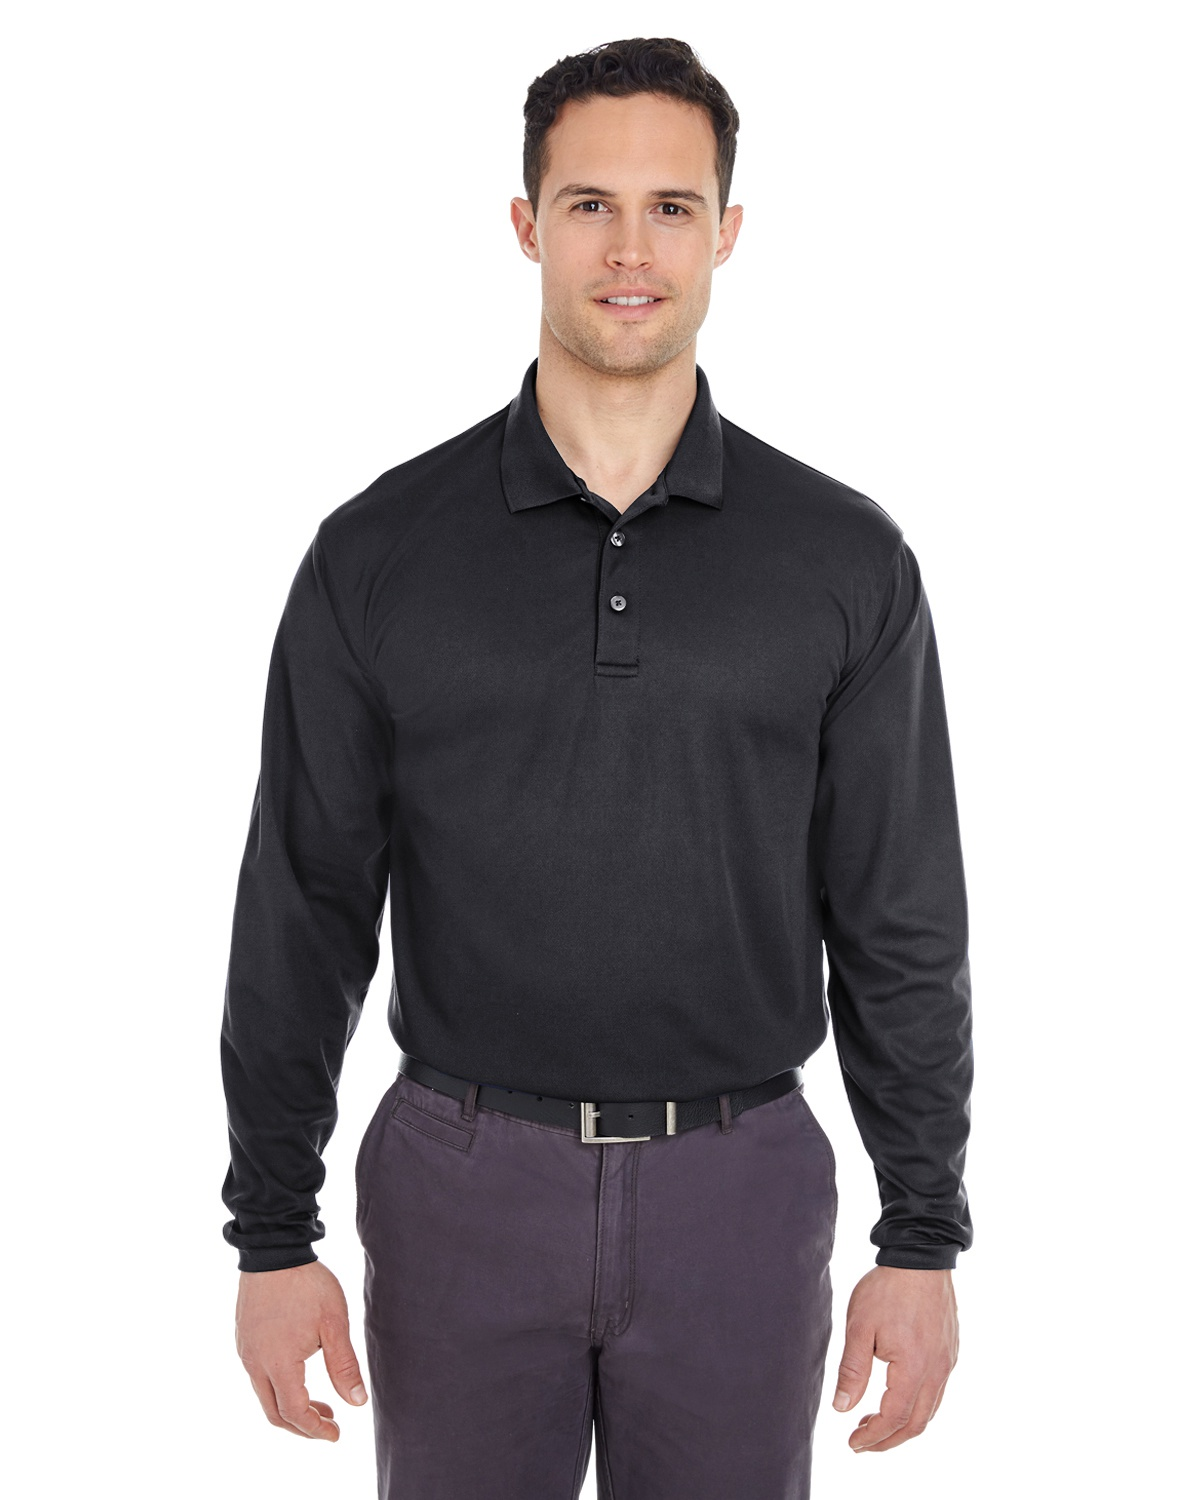 'UltraClub 8210LS Adult Cool & Dry Long-Sleeve Mesh Piqué Polo'